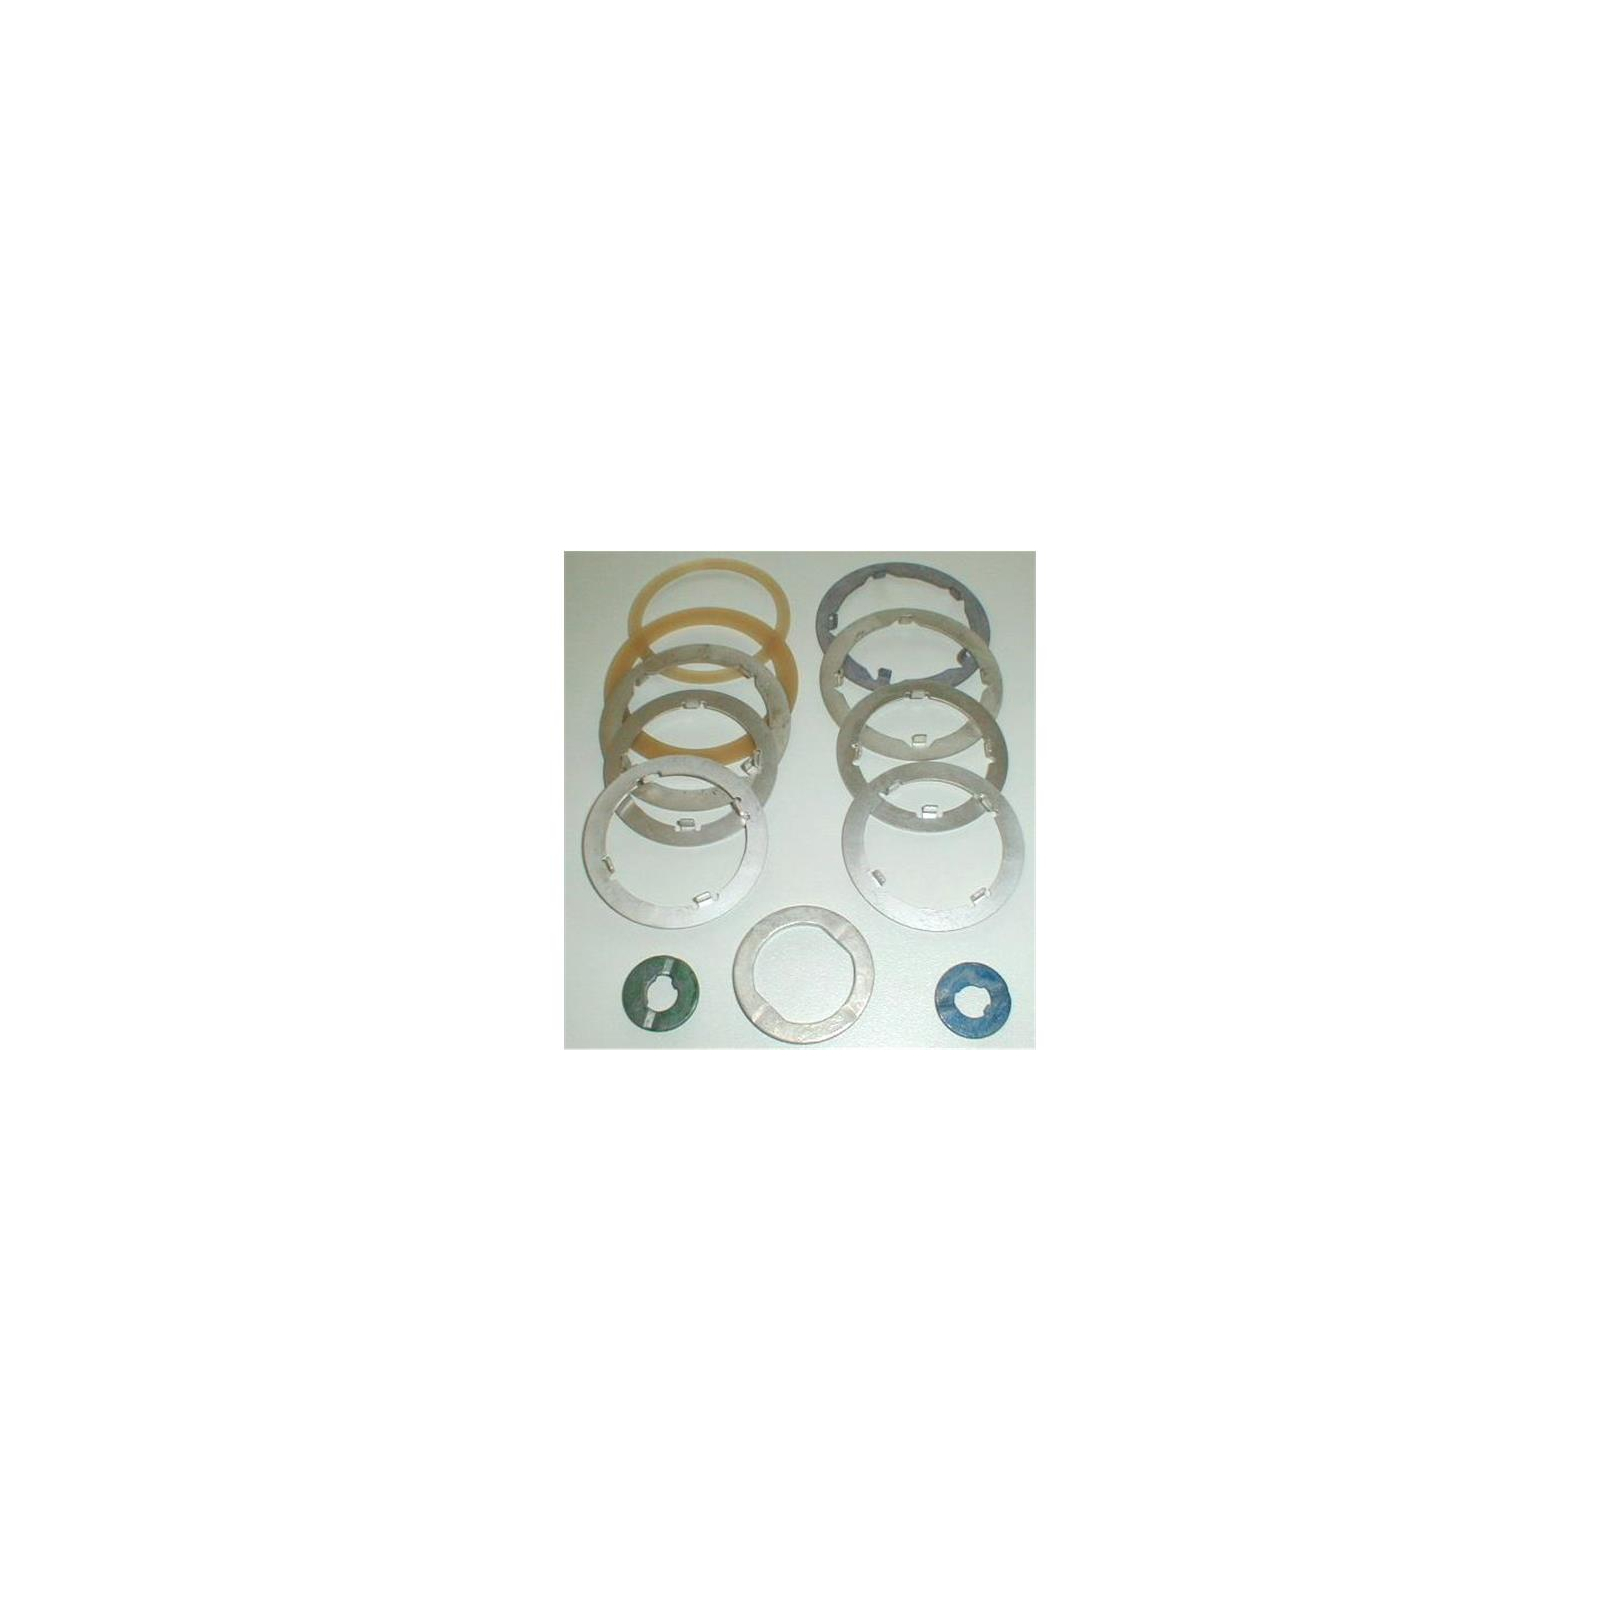 A413 A470 A670 Washer Kit 78-95